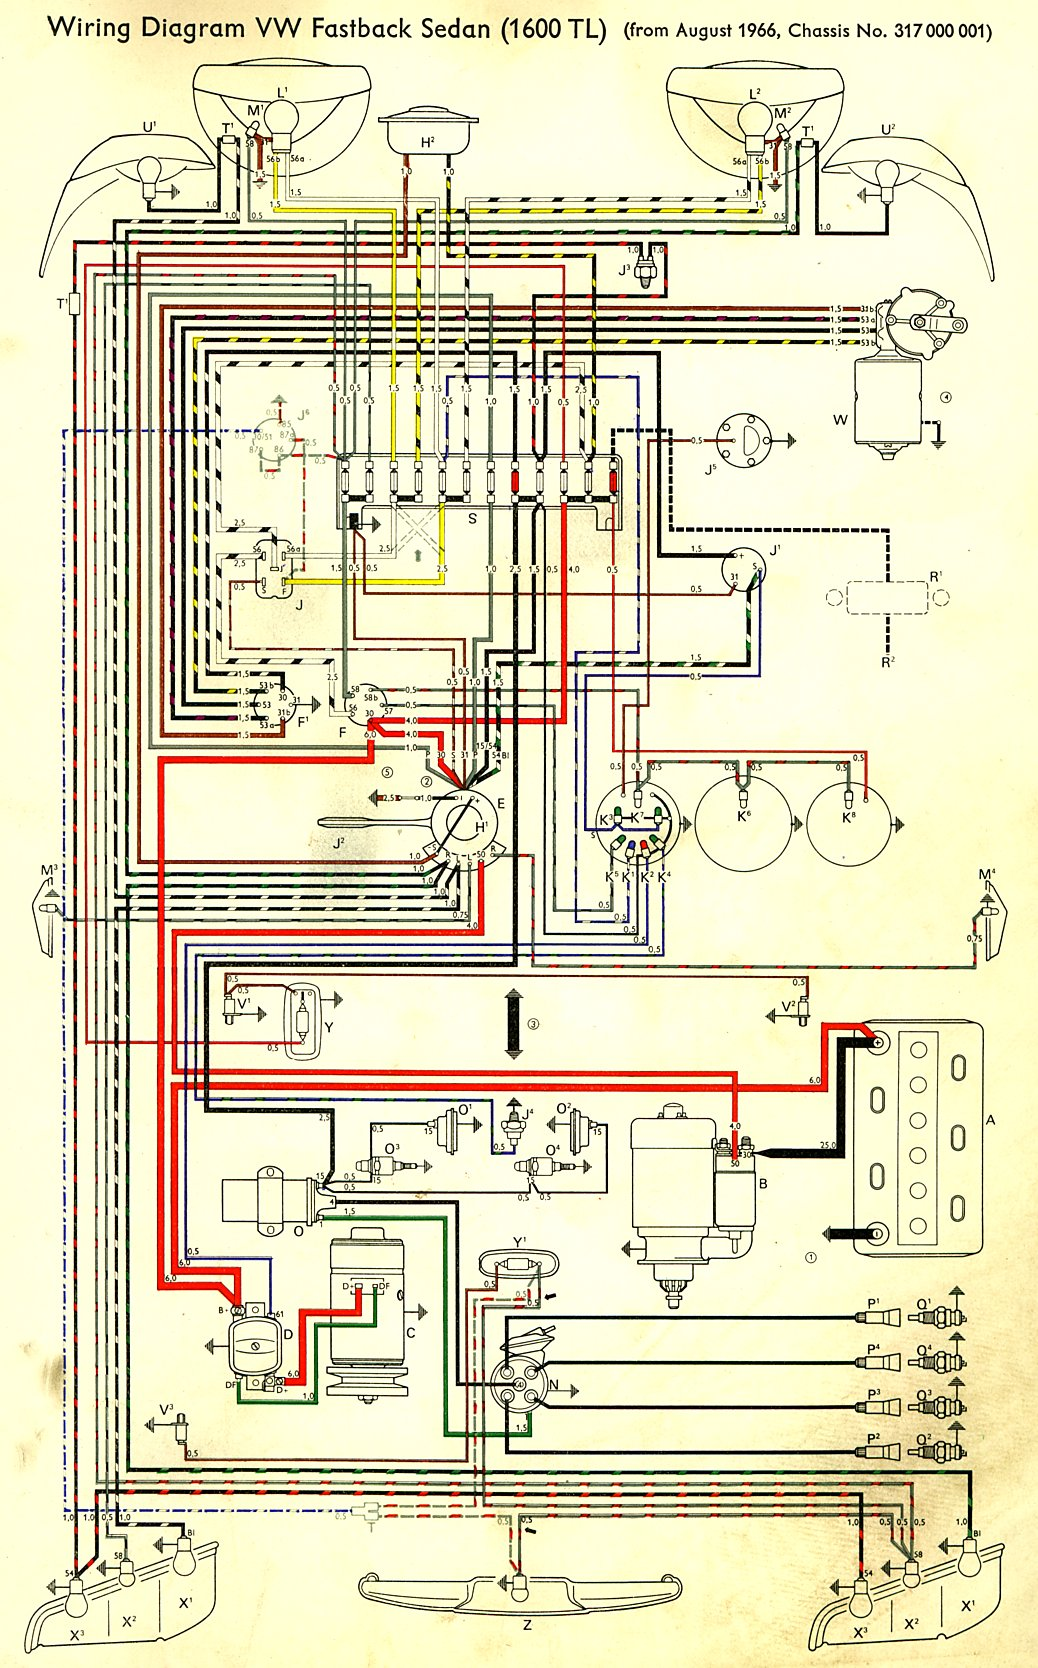 Volkswagen Type 3 Wiring Diagram - wiring diagrams